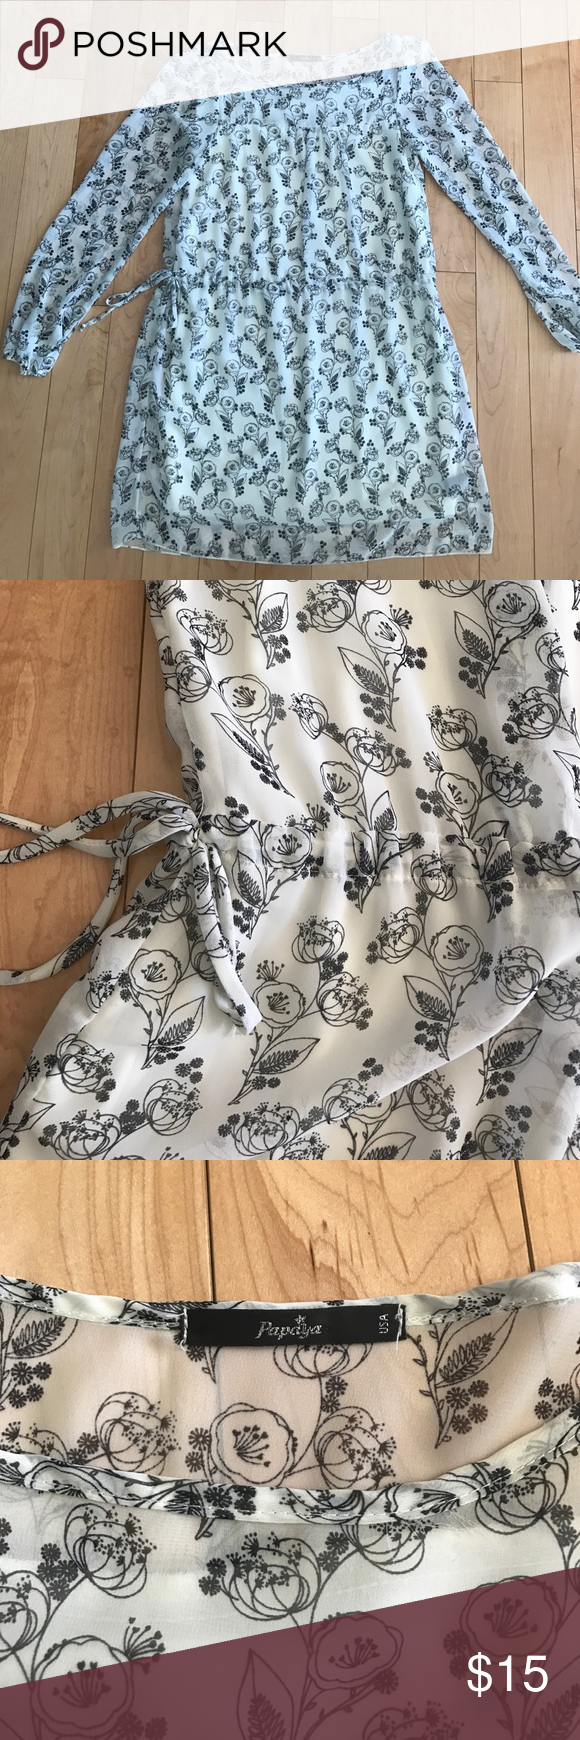 Papaya long sleeve white floral dress Long sleeve white floral dress with tie at waist. Sleeves are sheer. Perfect for springtime. Will fit small or medium. ***Any offers are warmly encouraged. 15% off a bundle of 3+ items. :) Papaya Dresses Mini